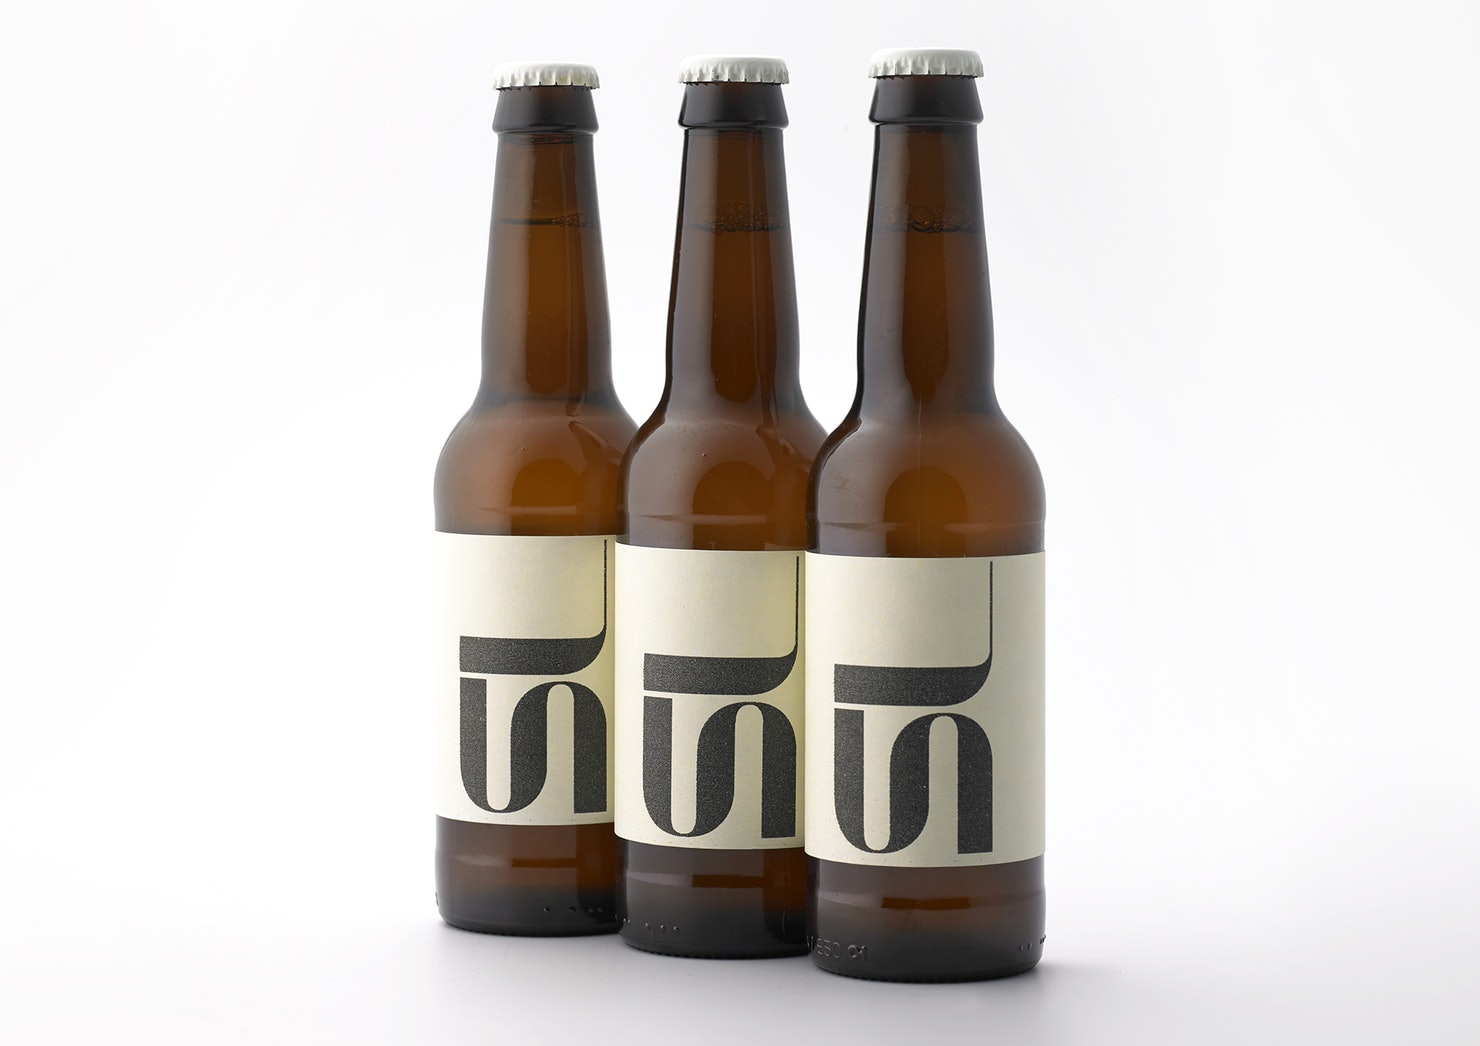 Above are two limited-edition beers created to celebrate Pentagram's two new partners: Sascha Lobe and Jon Marshall who joined the team during the rebrand.